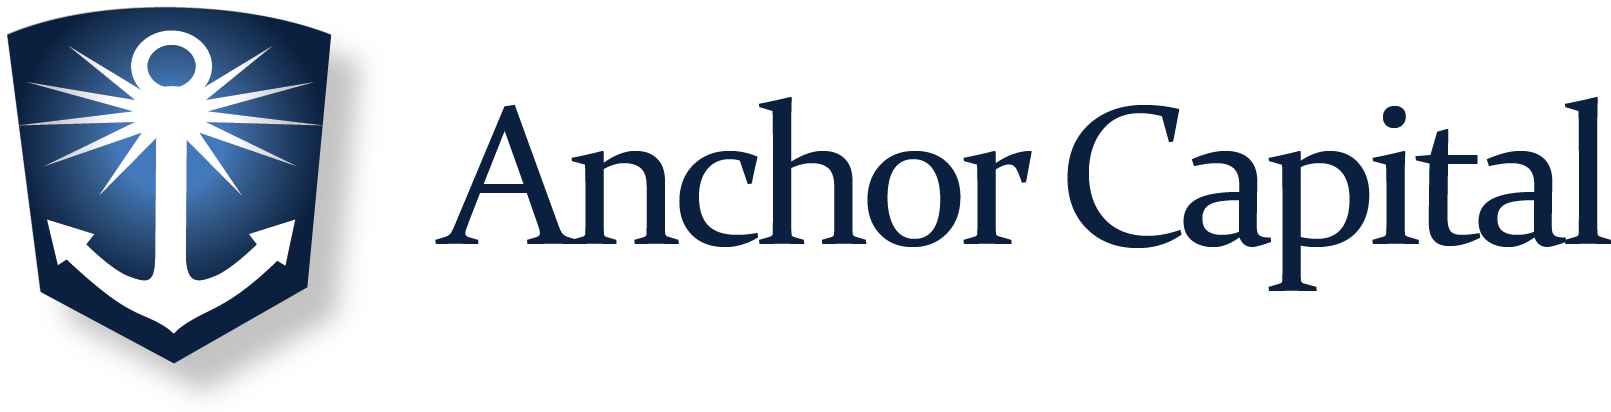 AnchorFullLogo-High-Res-1